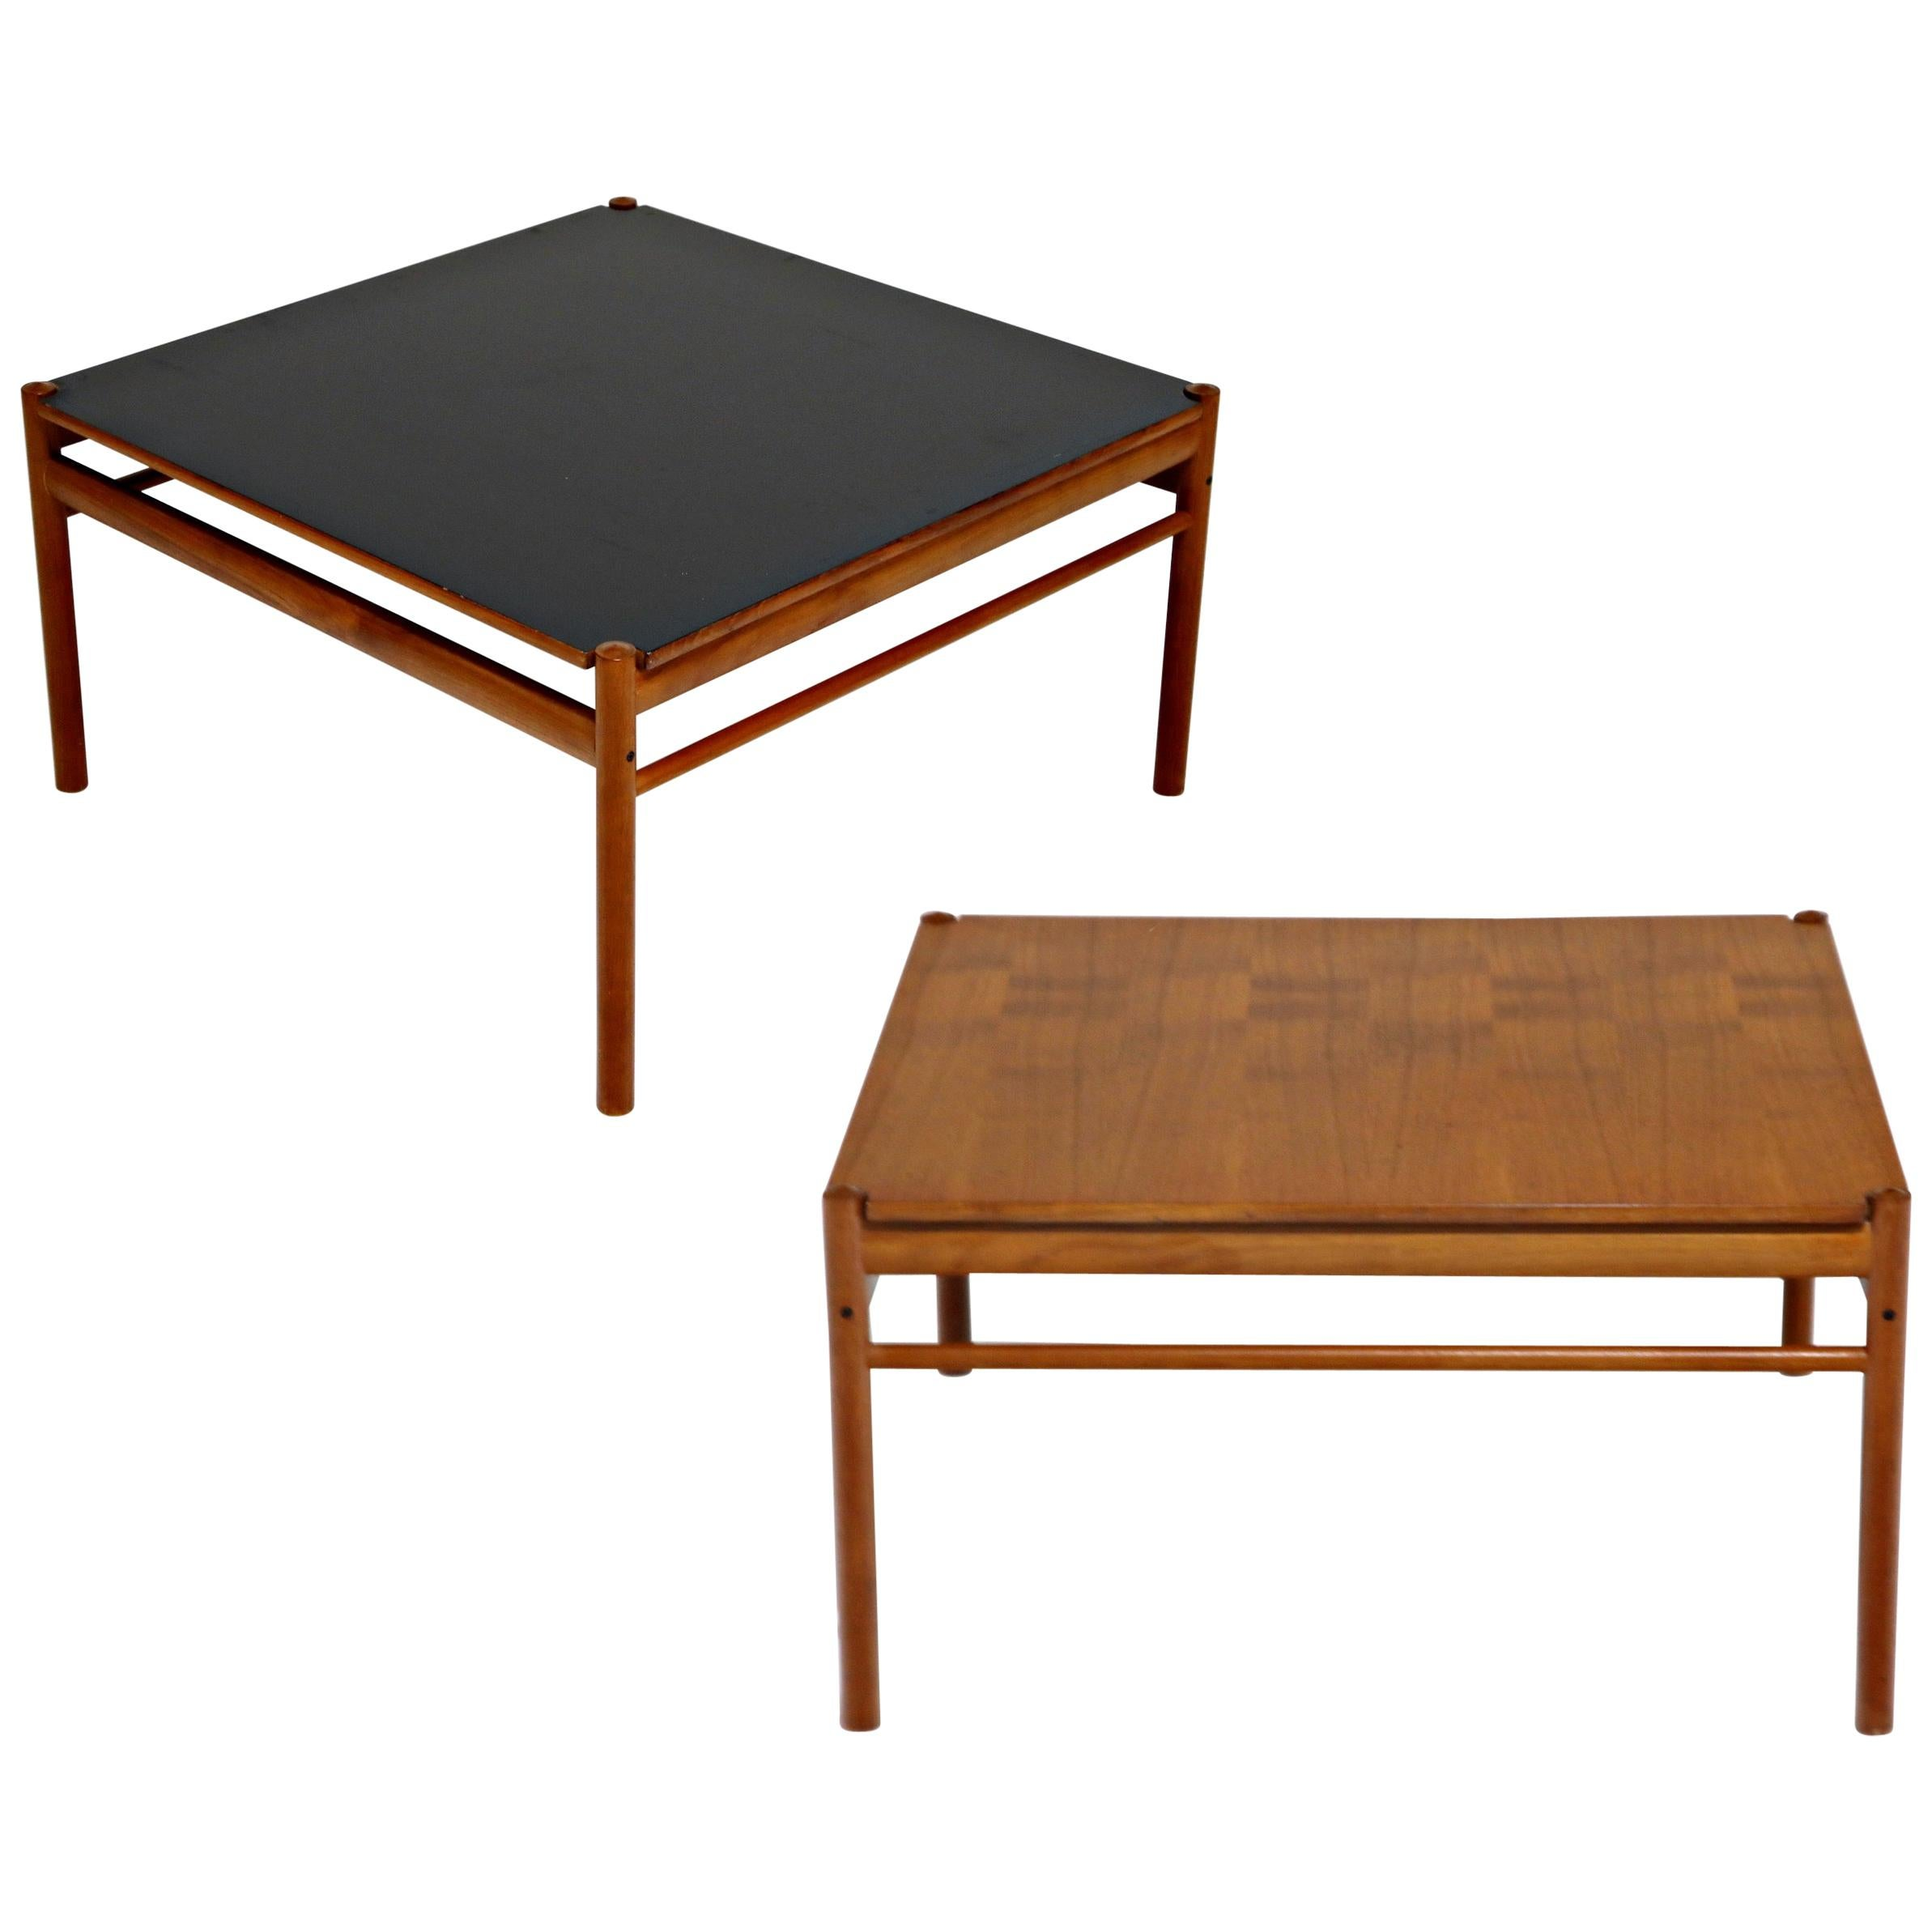 Reversible Teak & Formica Coffee Tables by Ole Wanscher for Poul Jeppesen